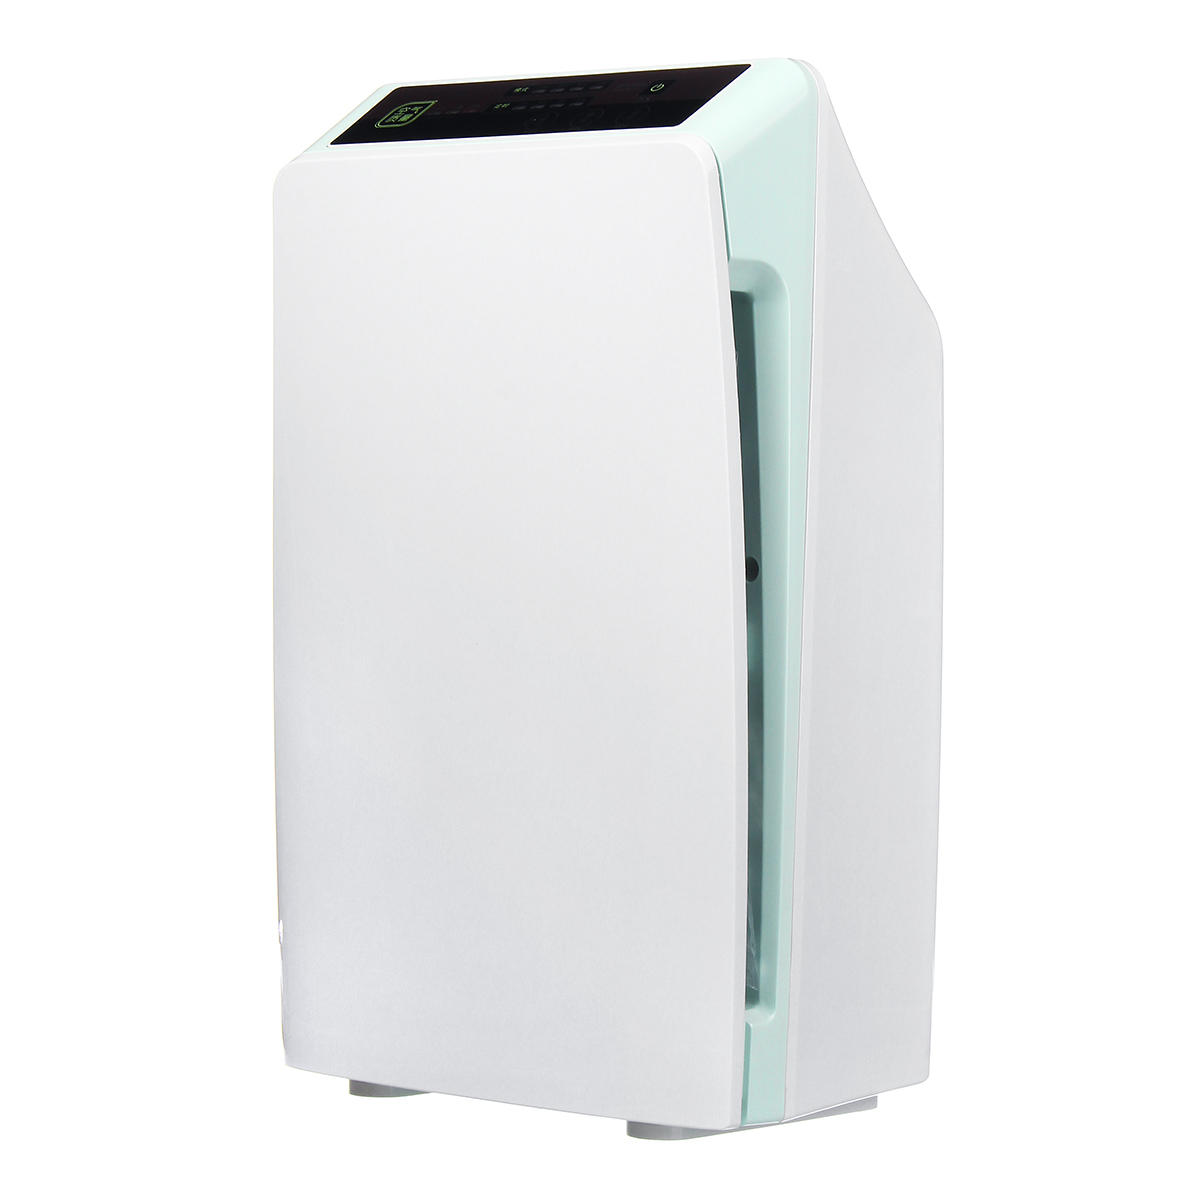 Purifying Breath Freshener Smoke Ionic Air Purifier Office Room W/ Remote Control